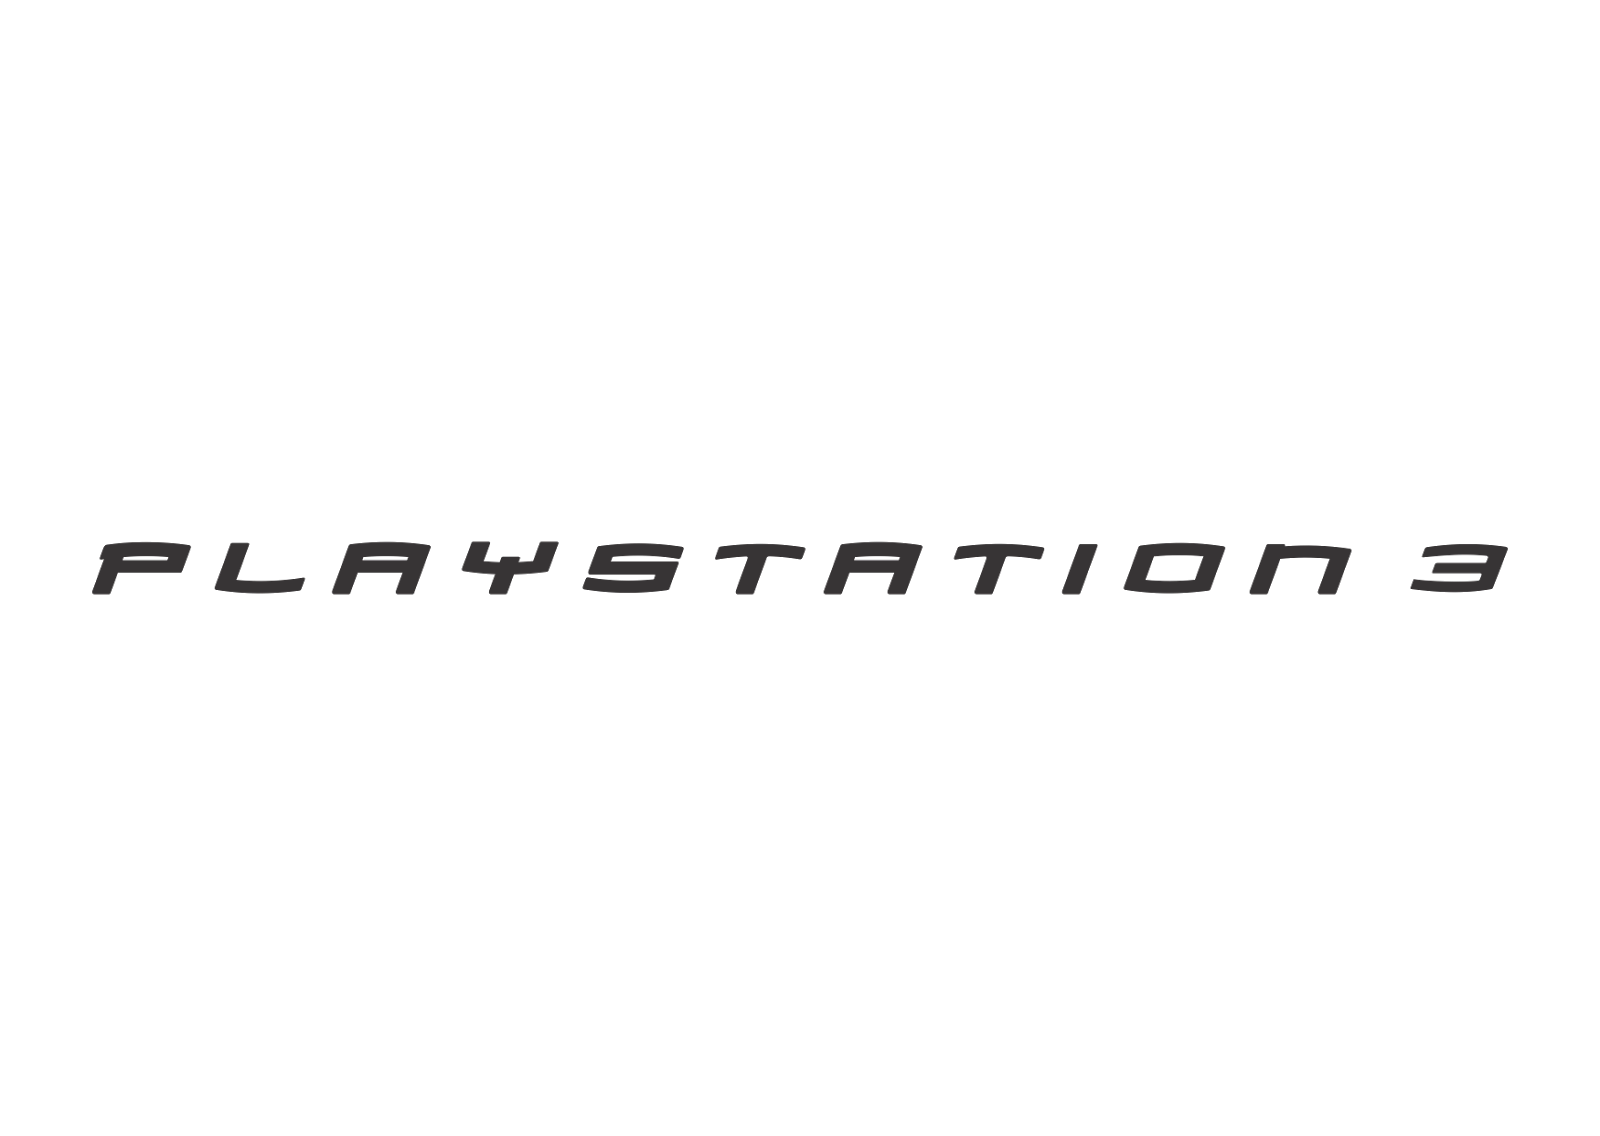 sony playstation 3 png logo #4617